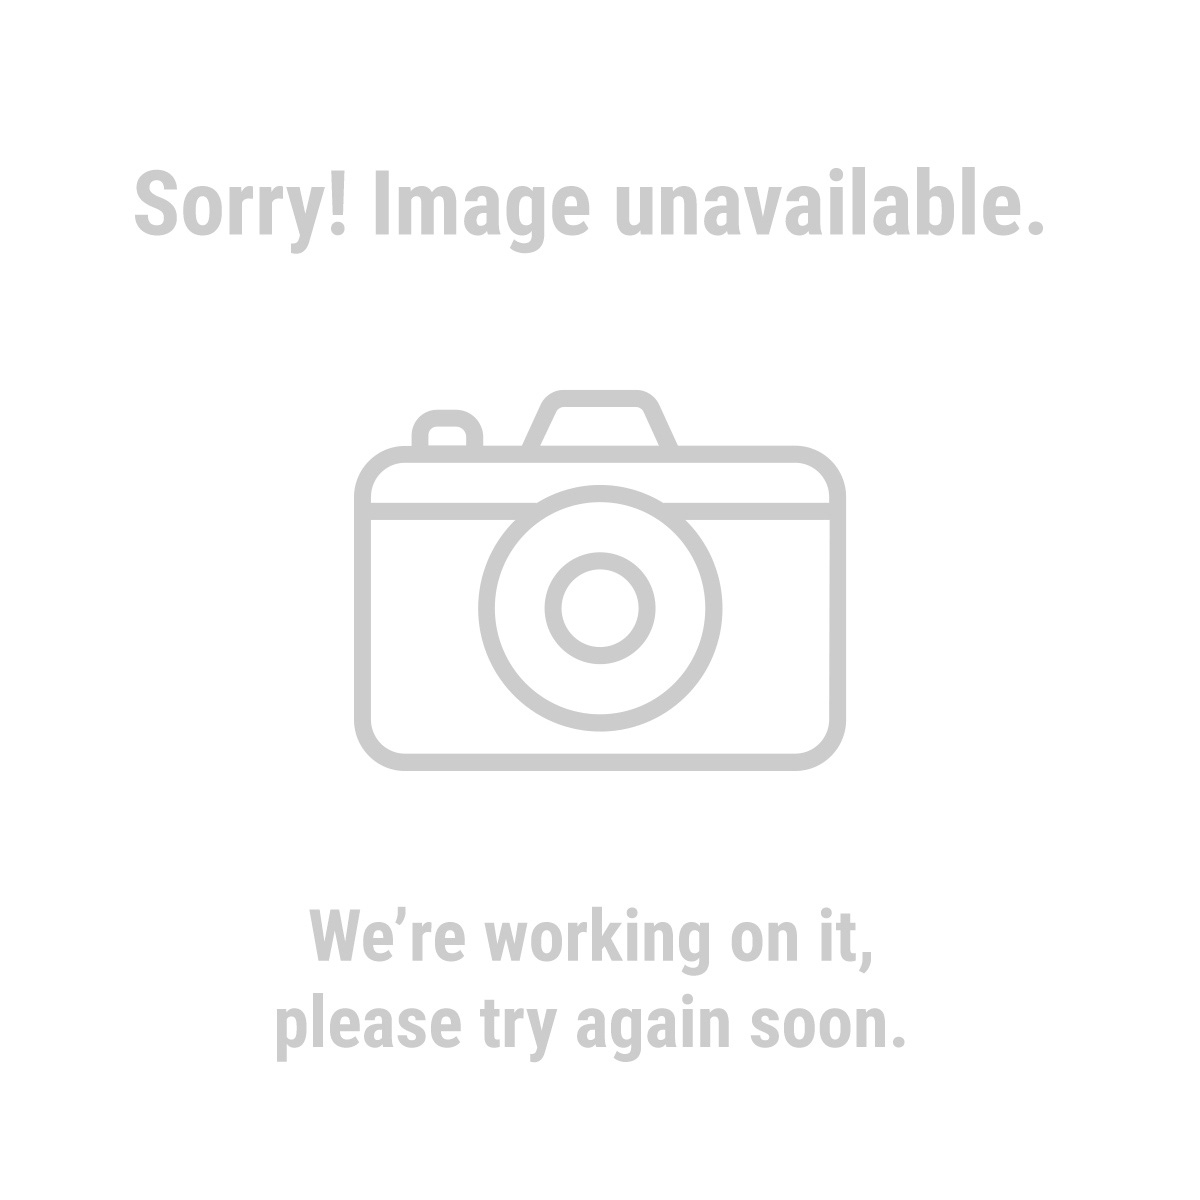 Western Safety 4468 Rubber Blasting Gloves